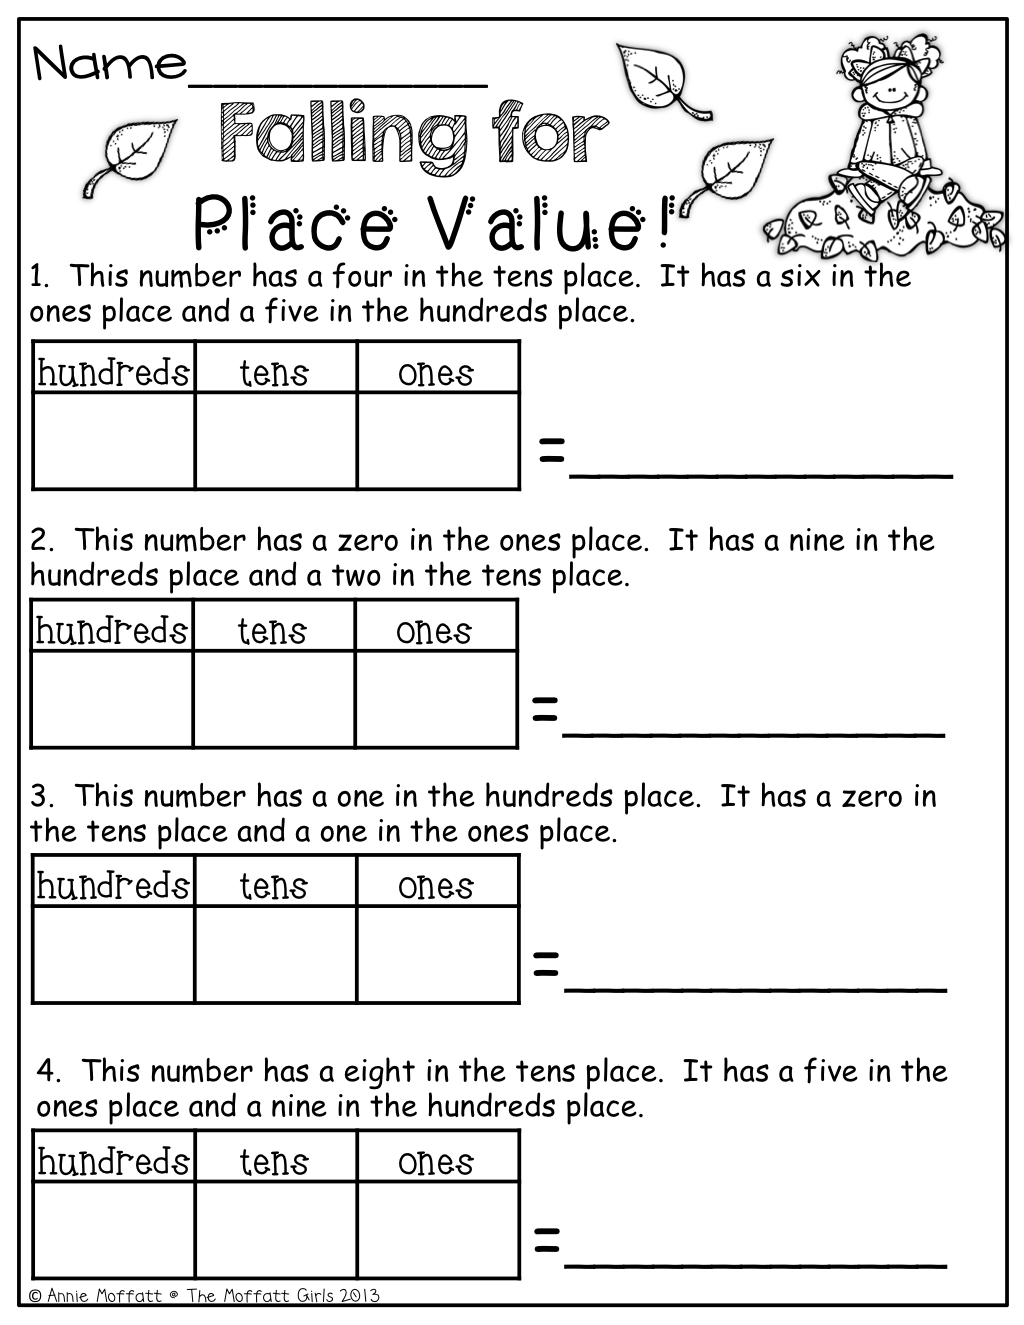 Grade 3 Math Place Value Worksheet